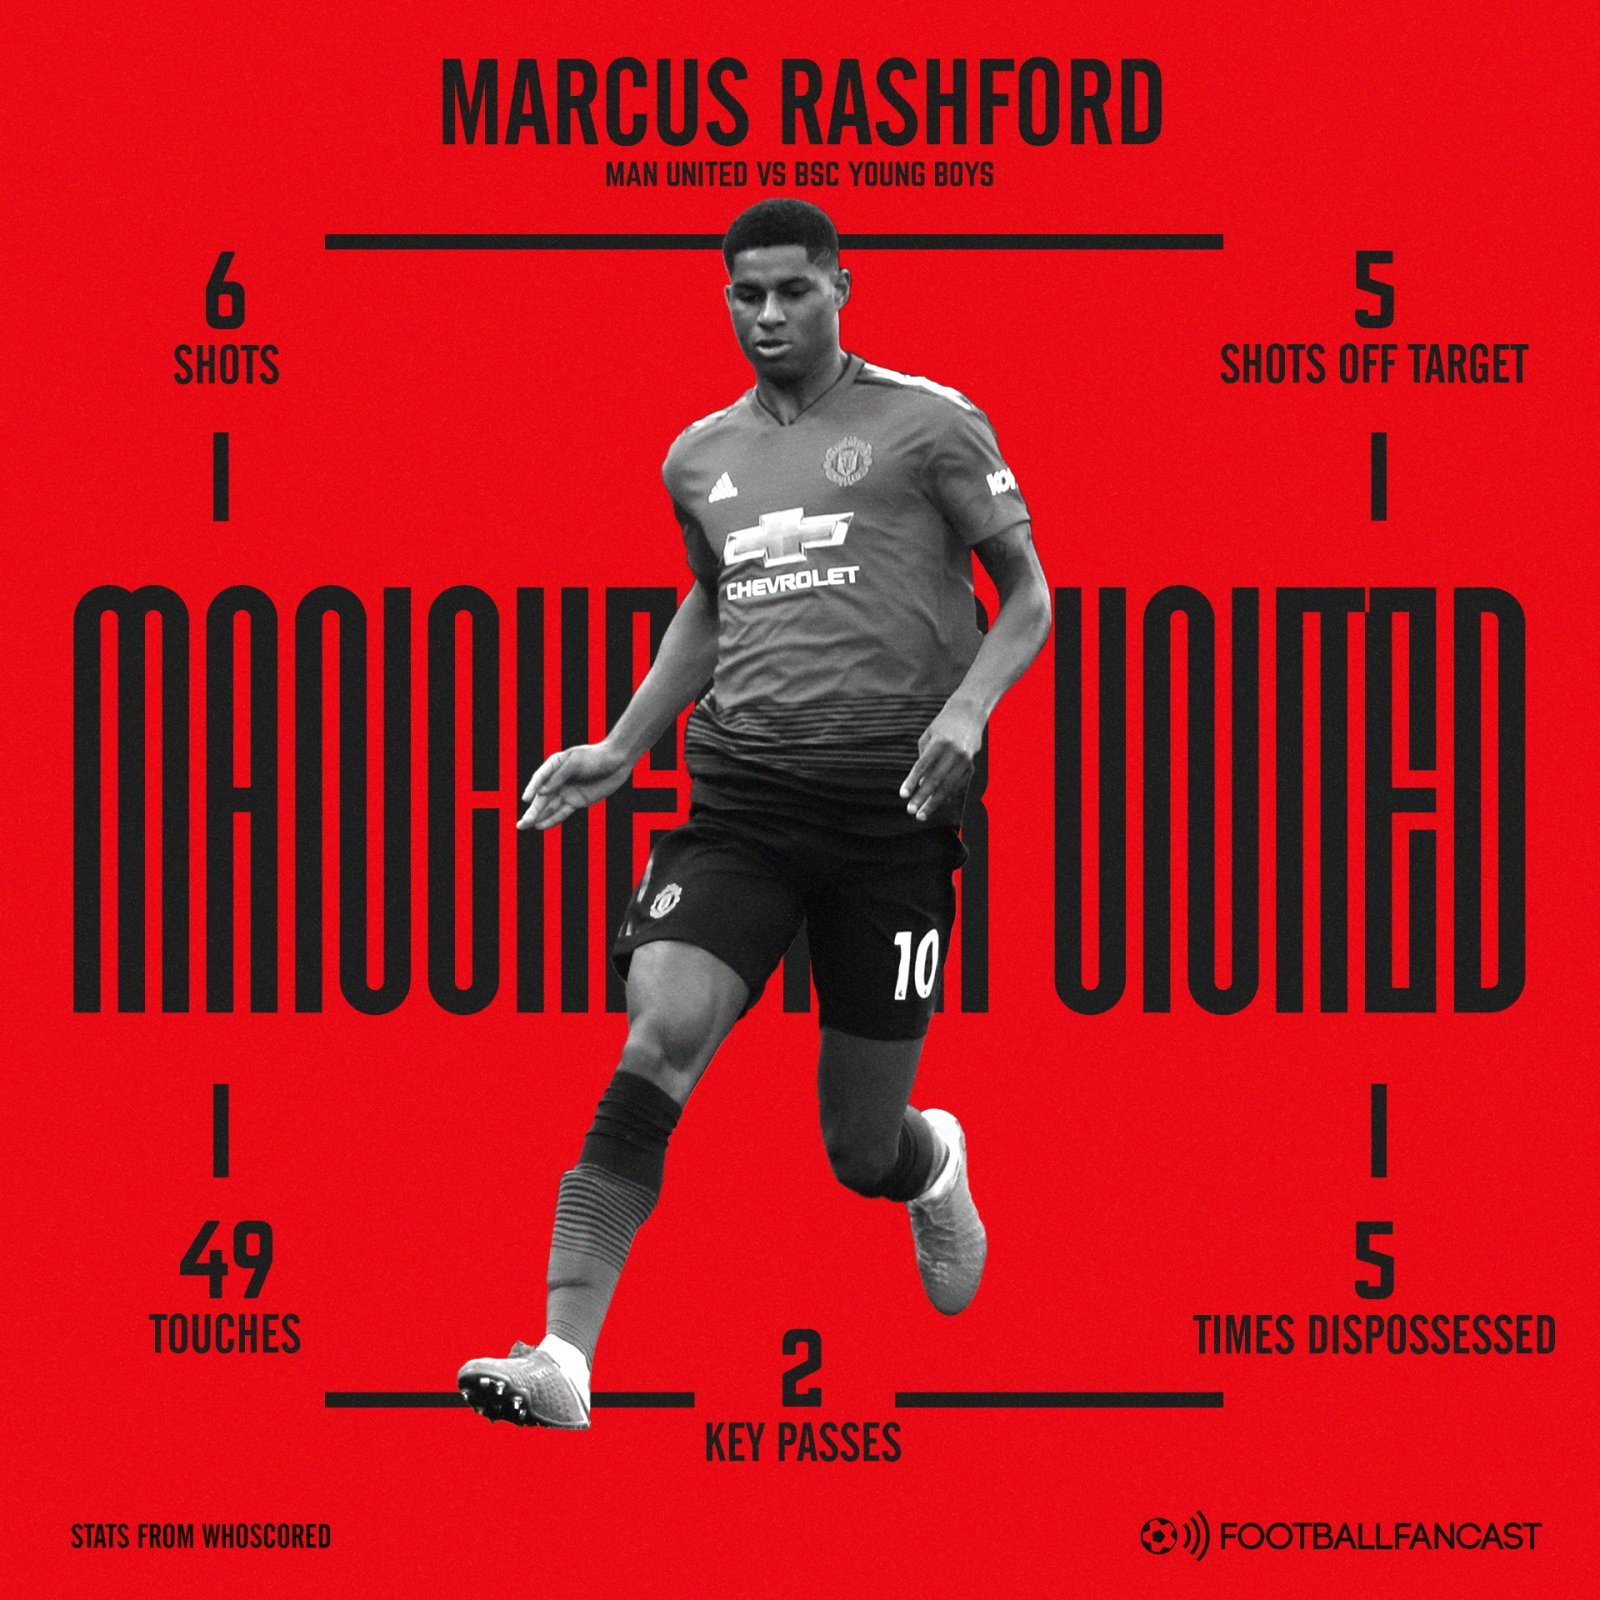 Marcus Rashford stats for Manchester United against BSC Young Boys